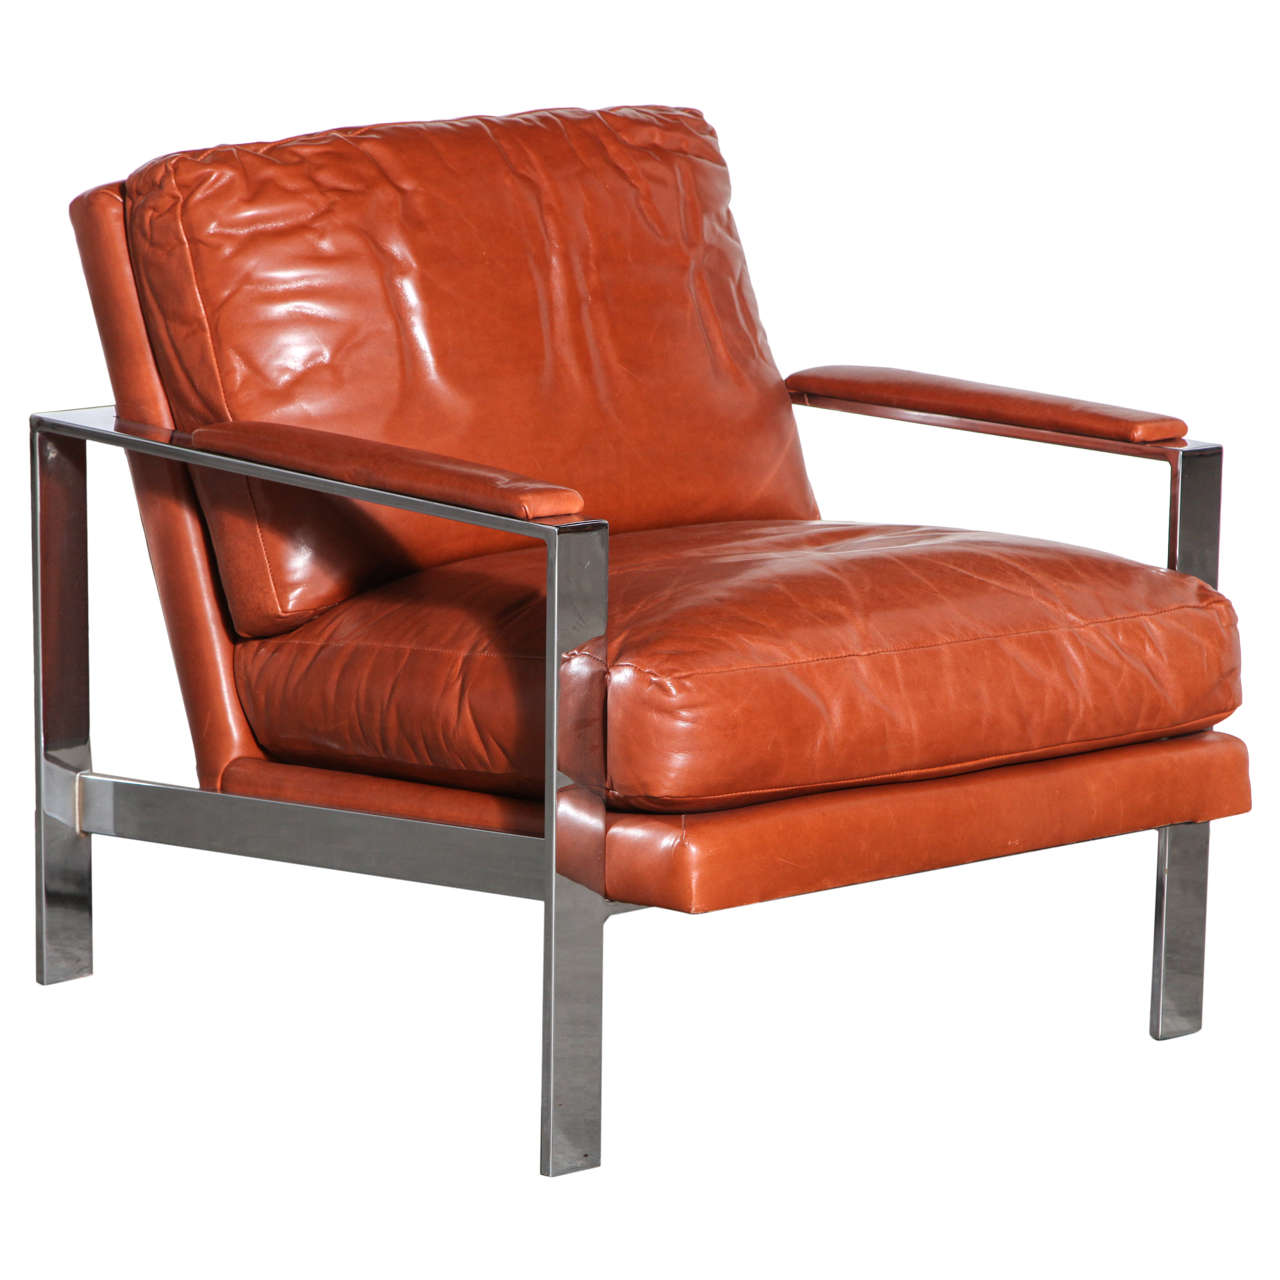 leather chrome chair poang review milo baughman and at 1stdibs for sale